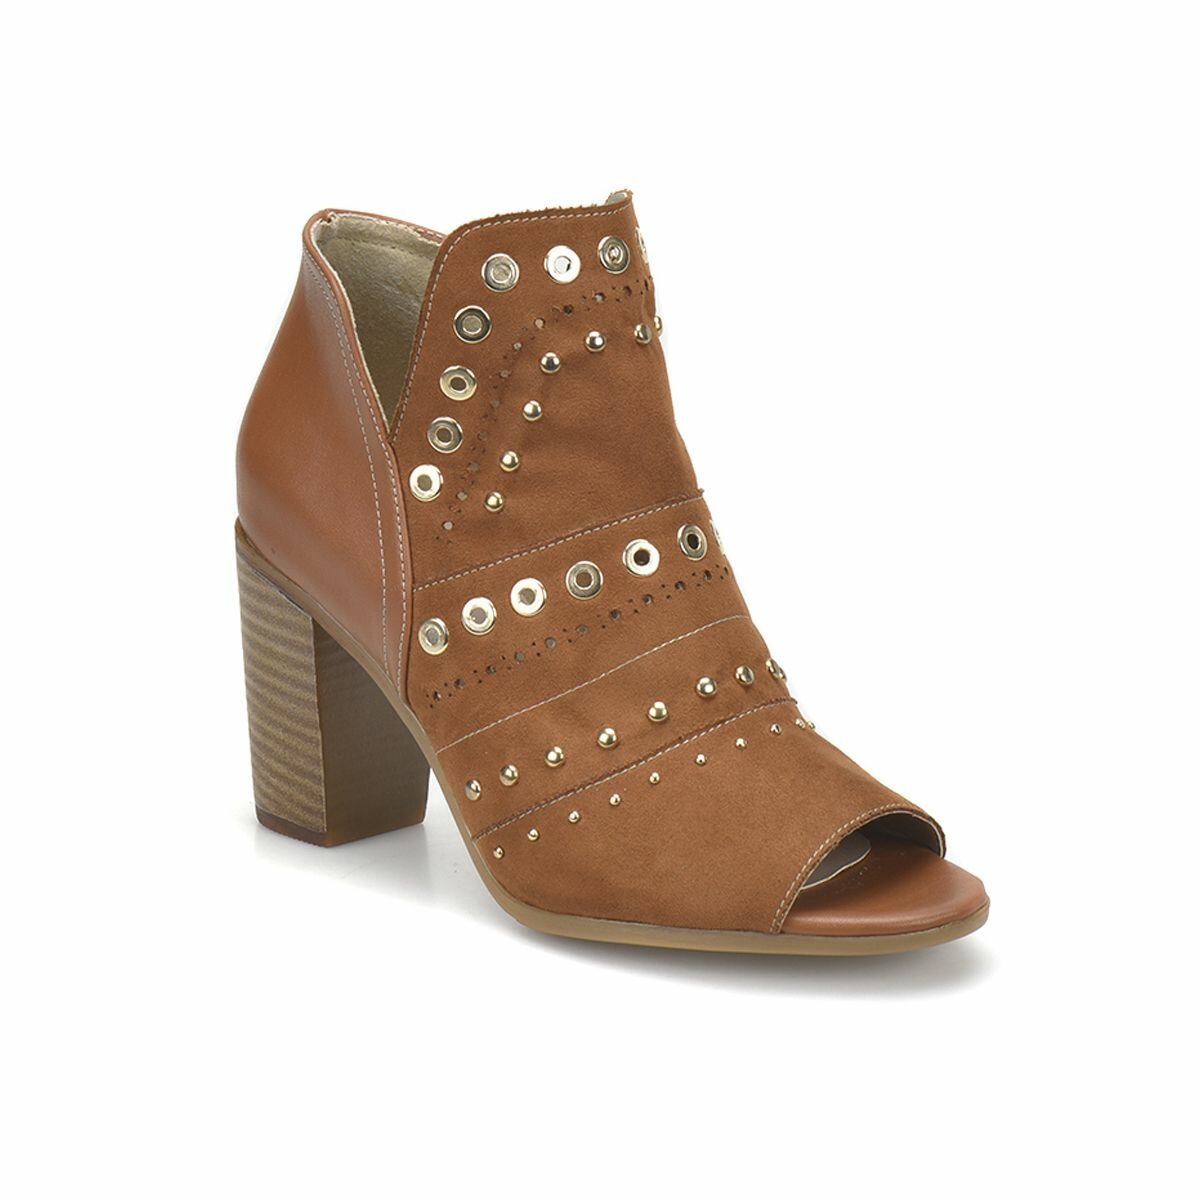 FLO 18S-526 Tan Women 'S Shoes BUTIGO